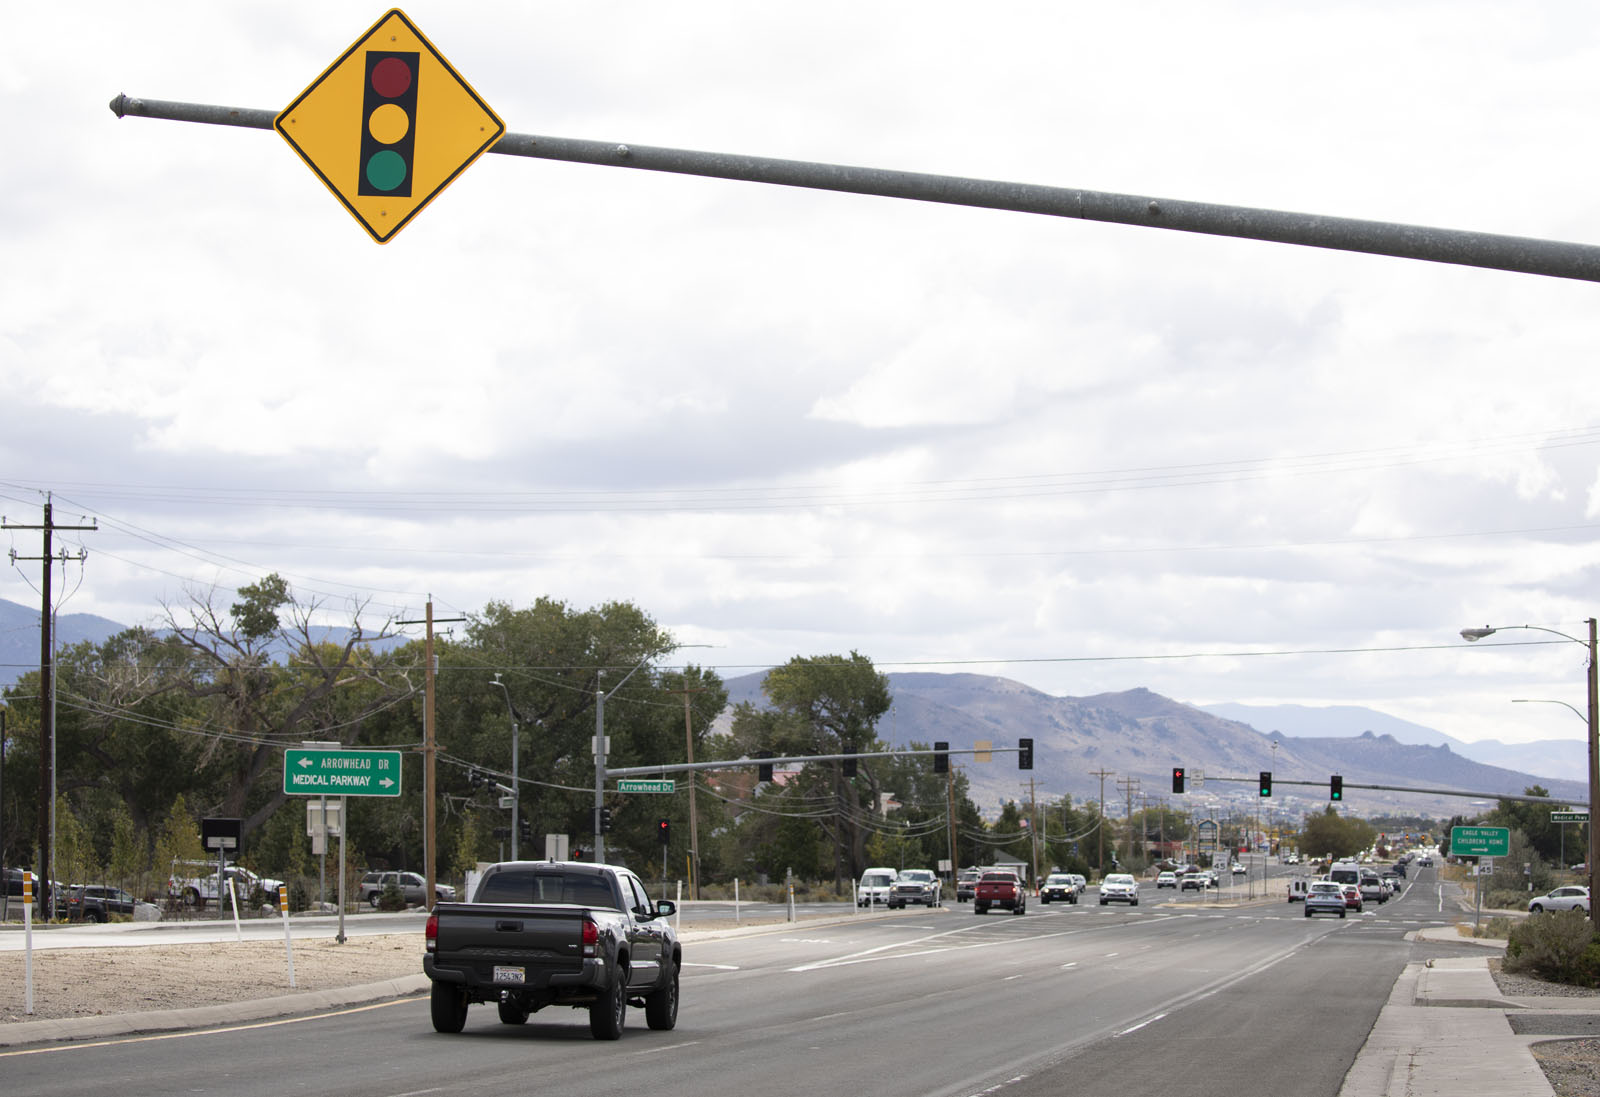 A car drives under a yellow road sign that signals a stoplight ahead